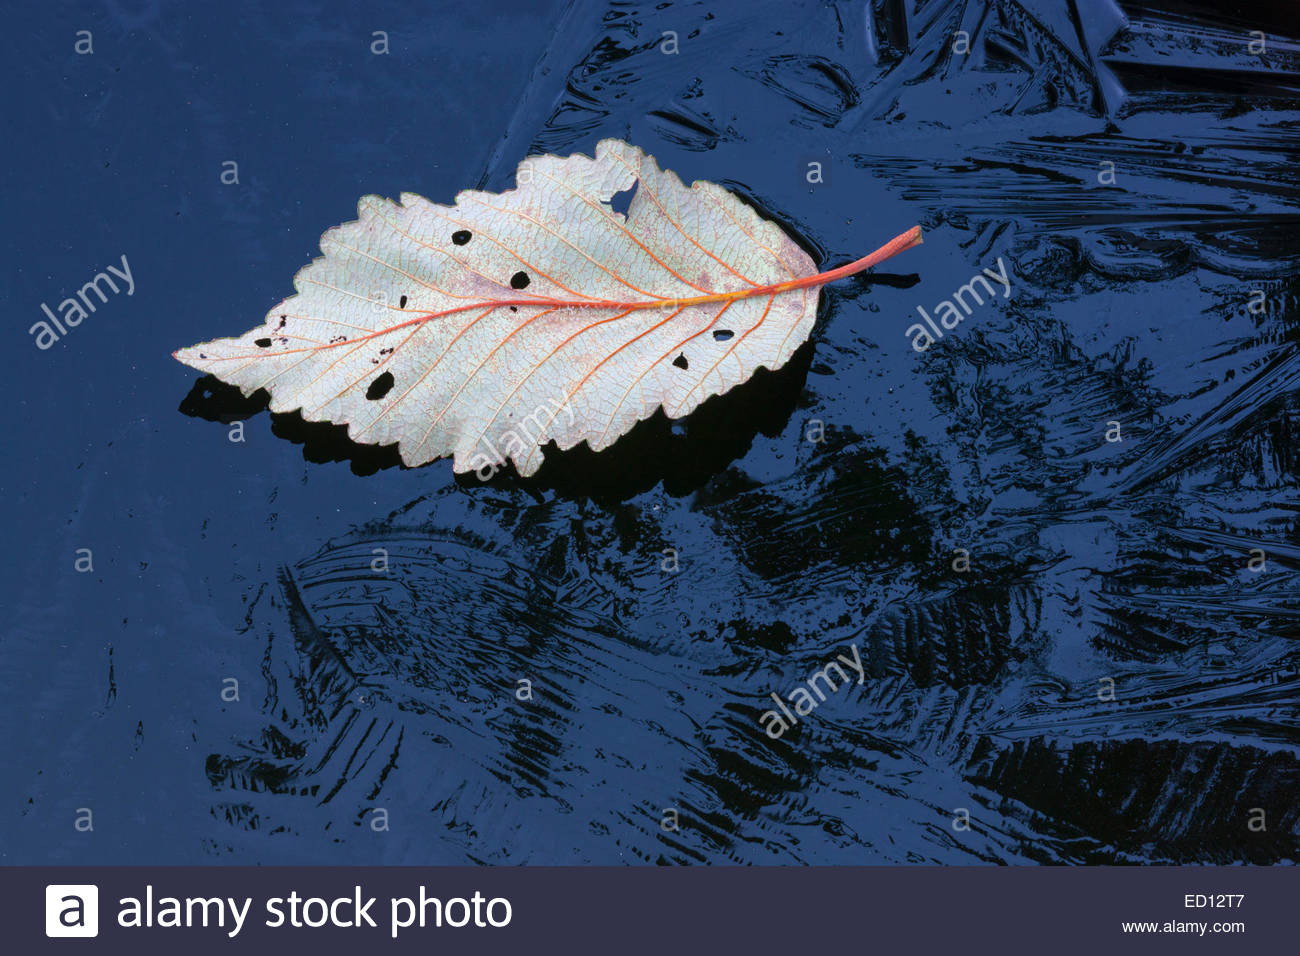 A fallen alder leaf floats on thin layer of ice covering a pond in Snohomish County, Washington. - Stock Image